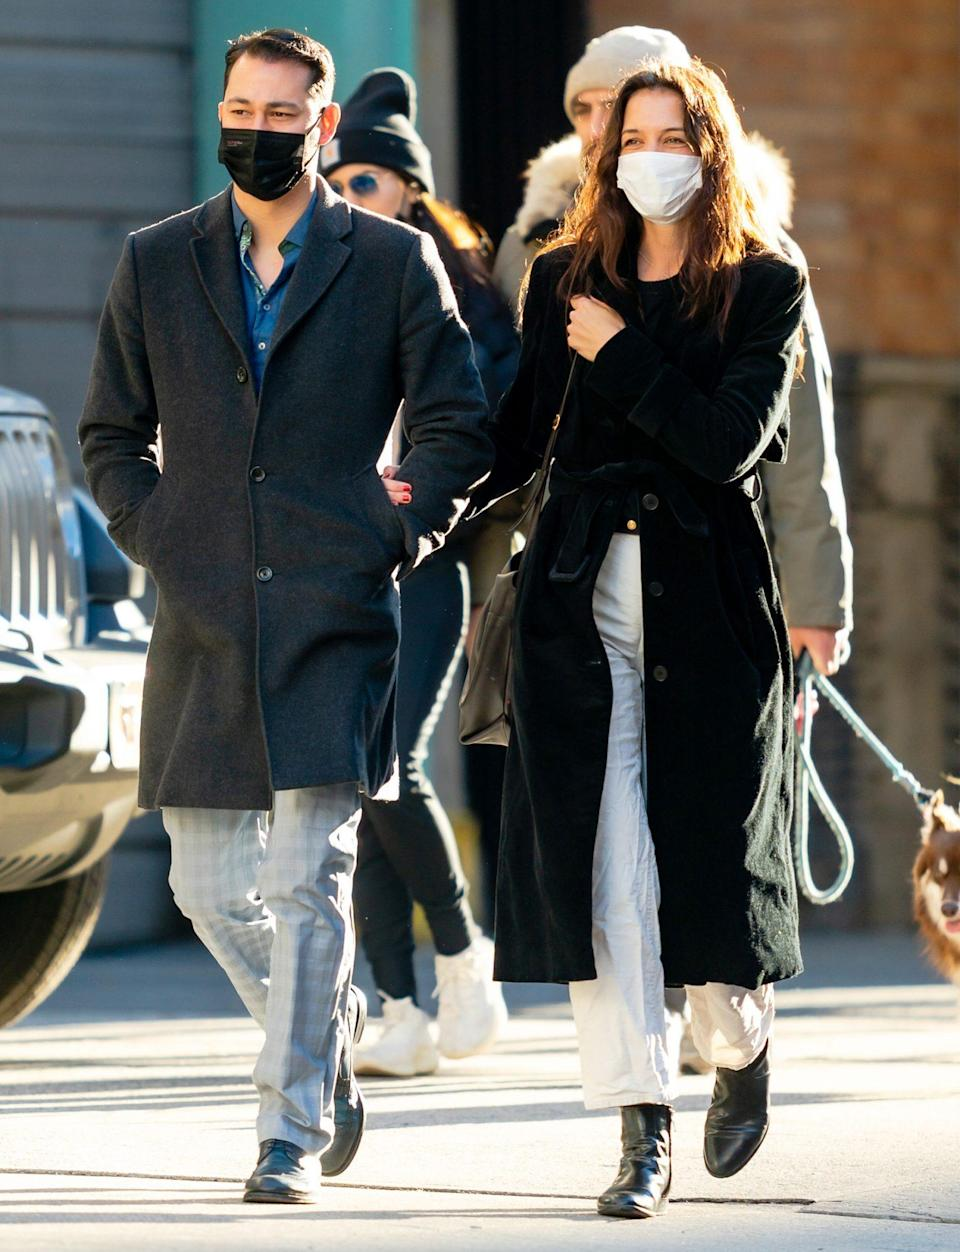 <p>Katie Holmes and boyfriend Emilio Vitolo Jr. share laughs and enjoy their walk together through N.Y.C on Sunday.</p>